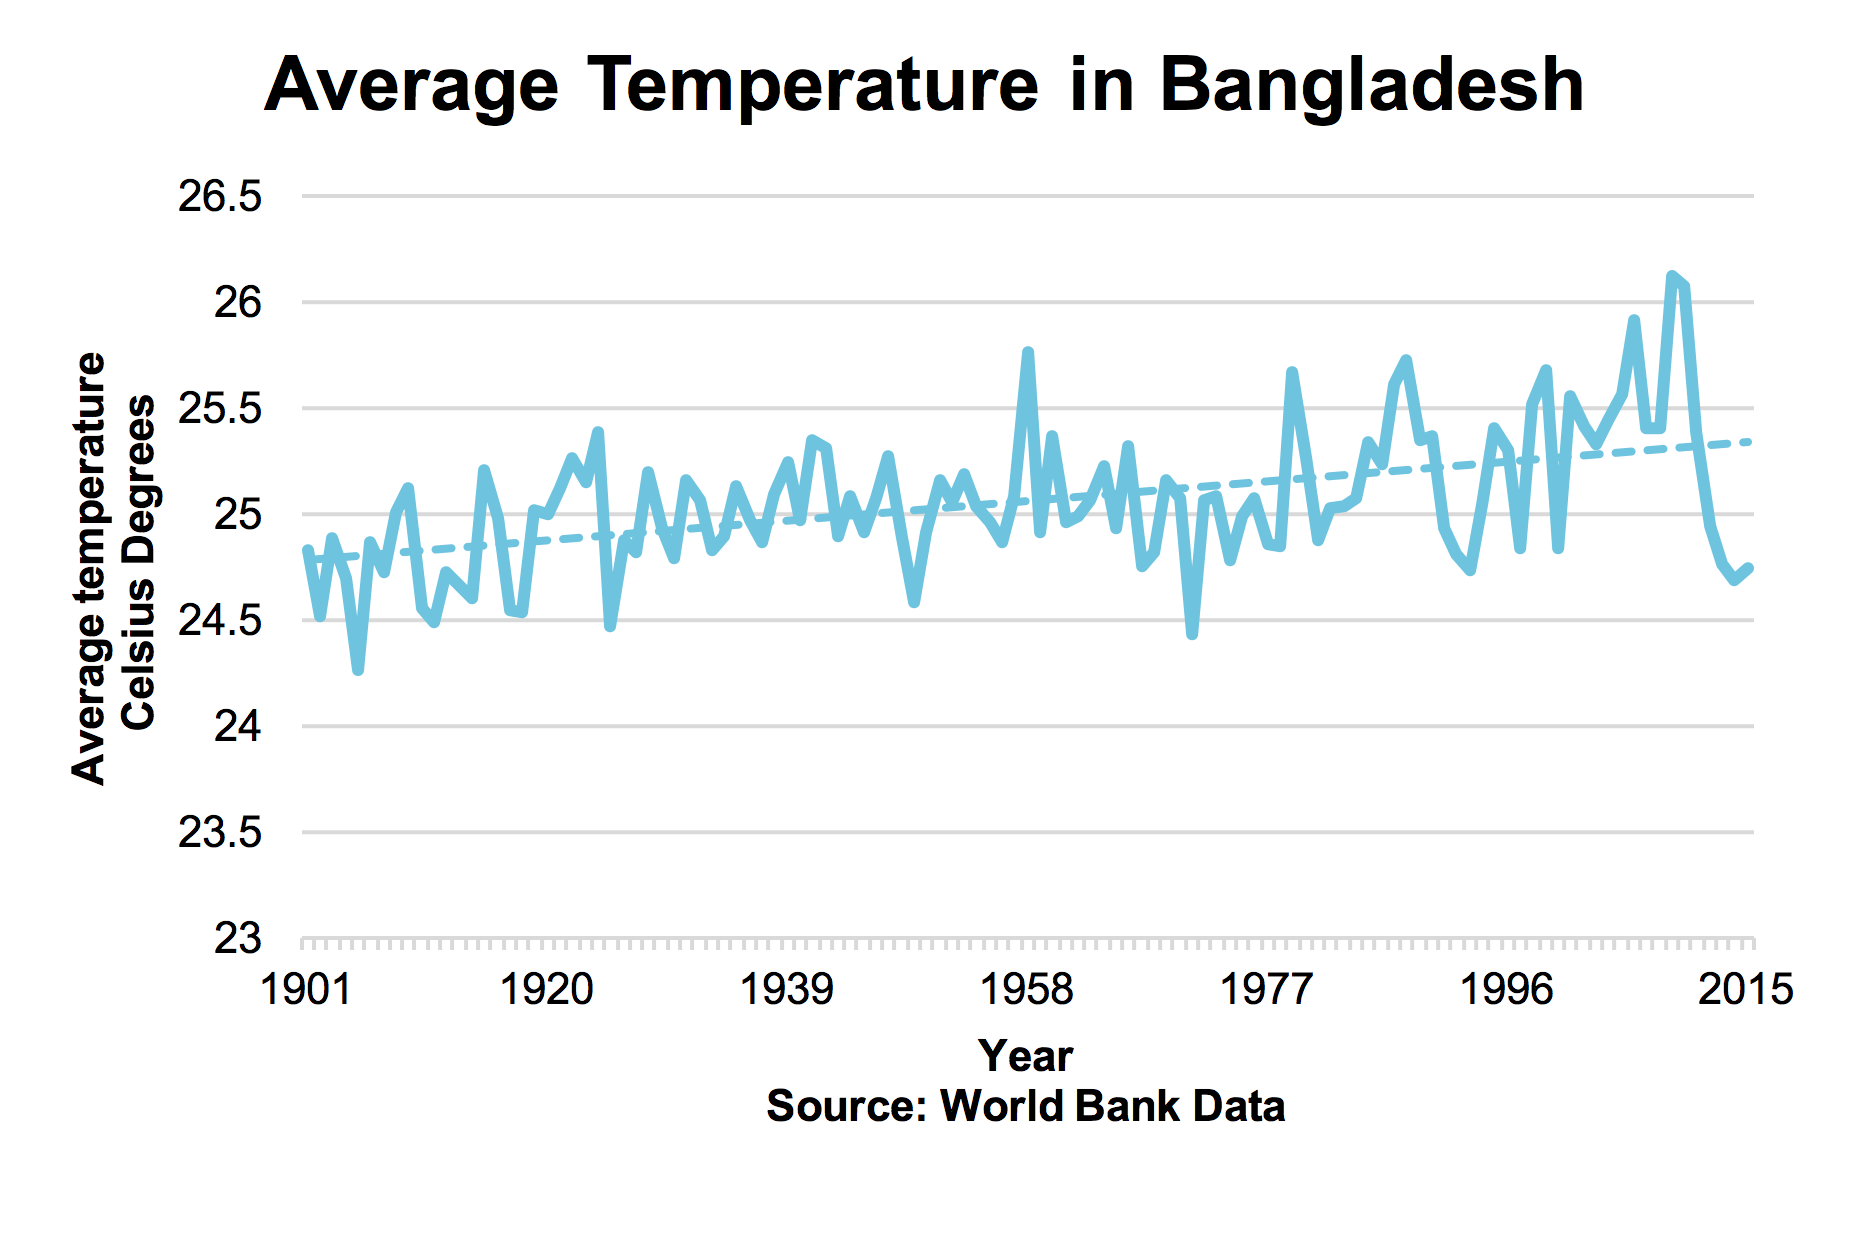 Figure 1: Average Temperature in Bangladesh